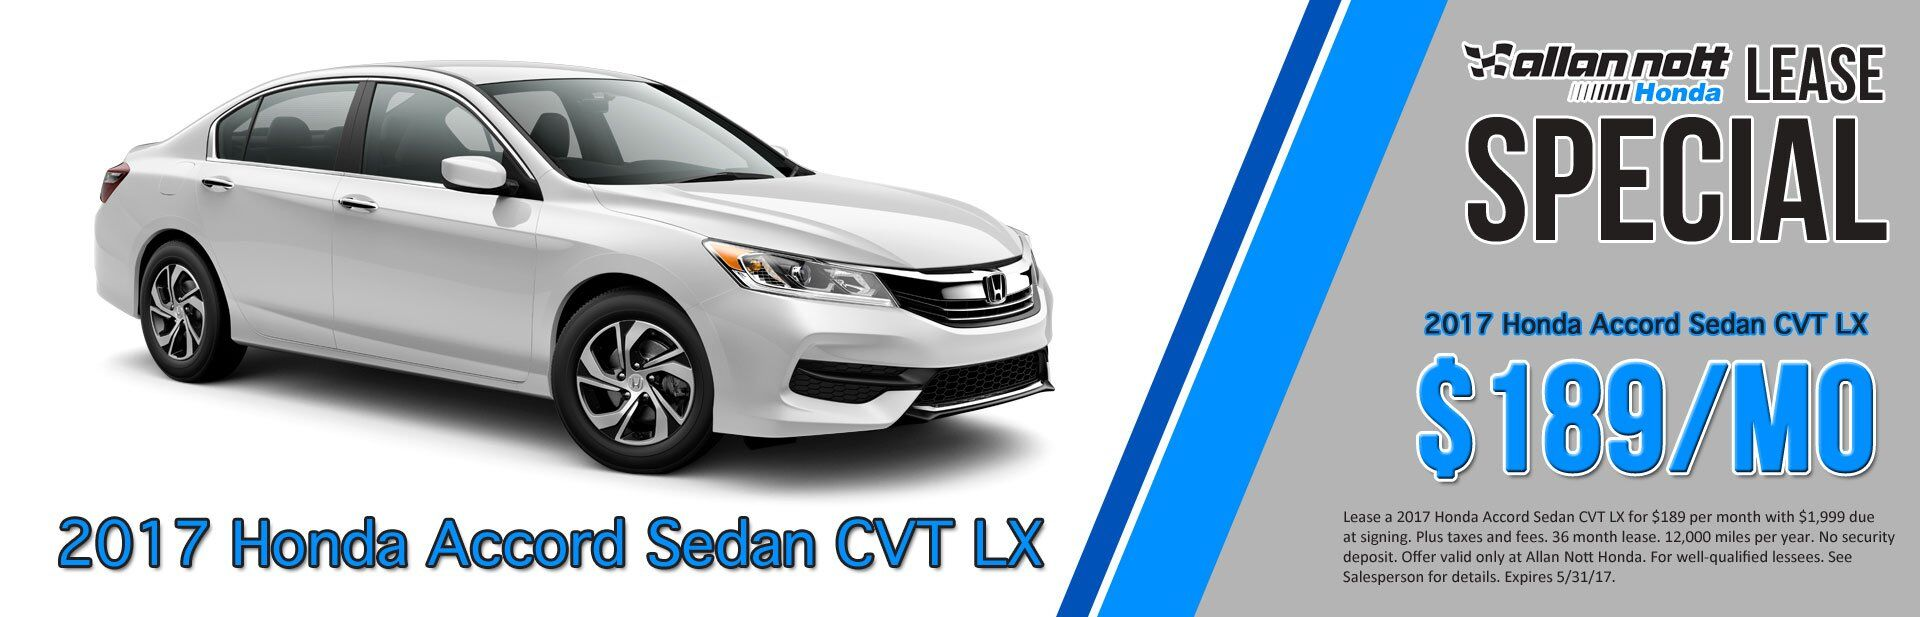 Allan Nott Honda Lease Special: 2017 Honda Accord Sedan CVT LX